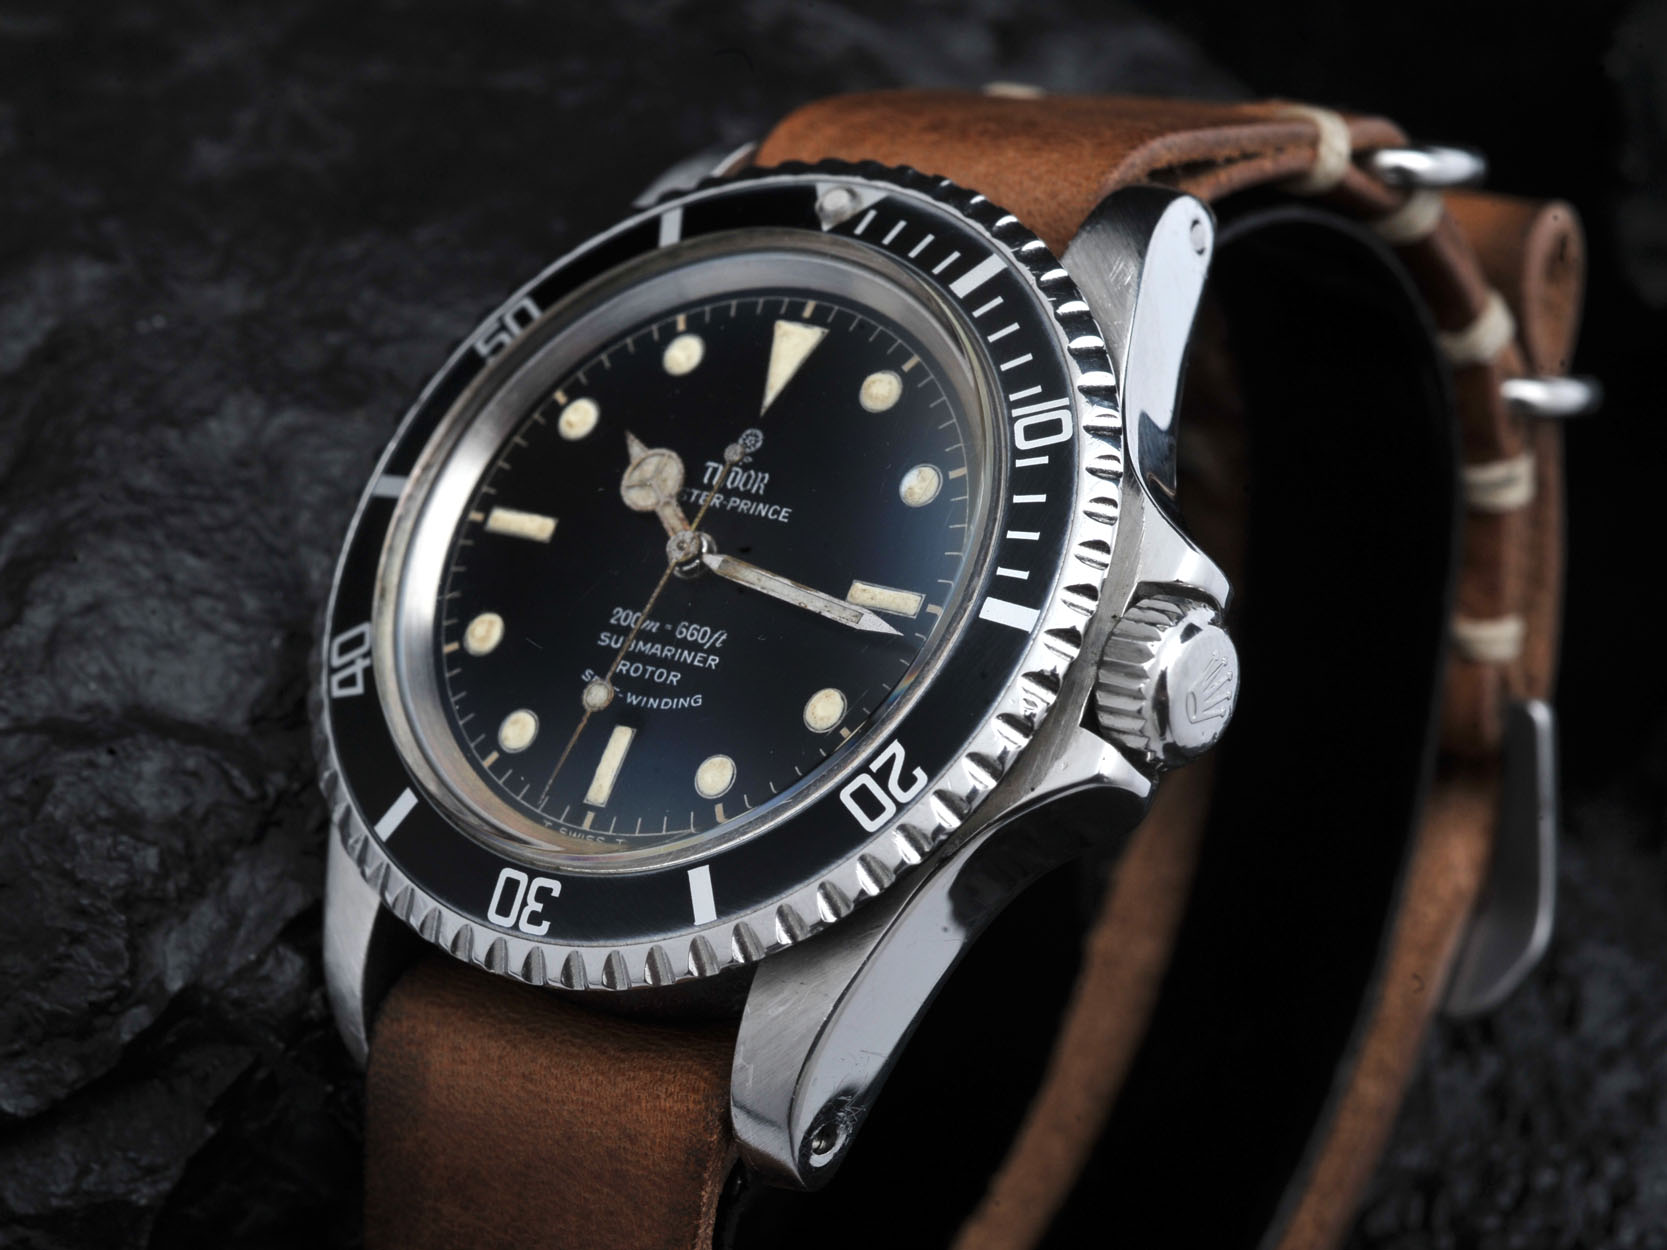 B&S Tudor W-23 7928 Ross 18